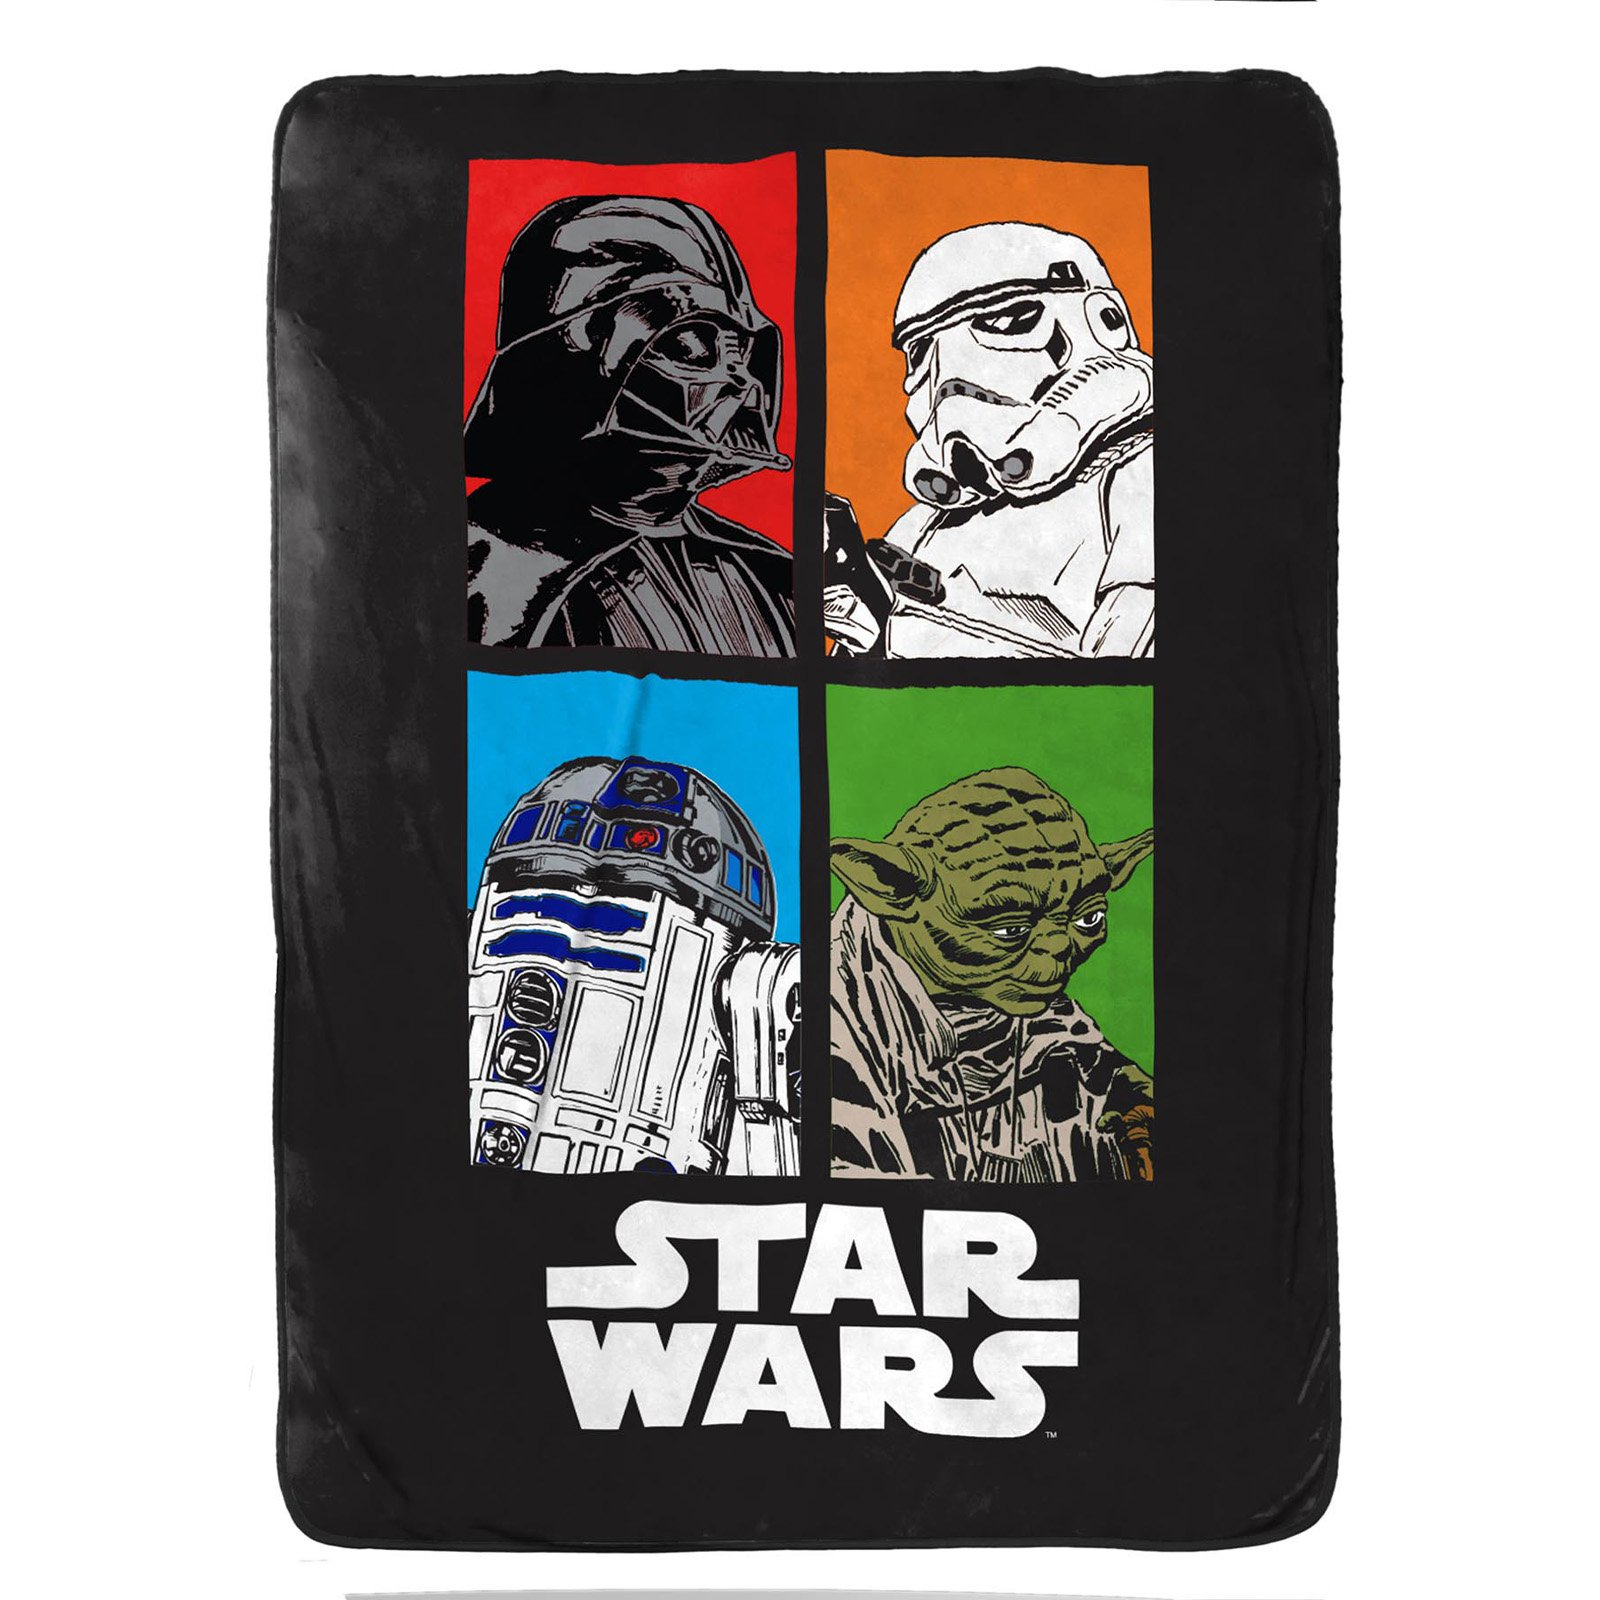 Star Wars Classic Twin Blanket, 1 Each